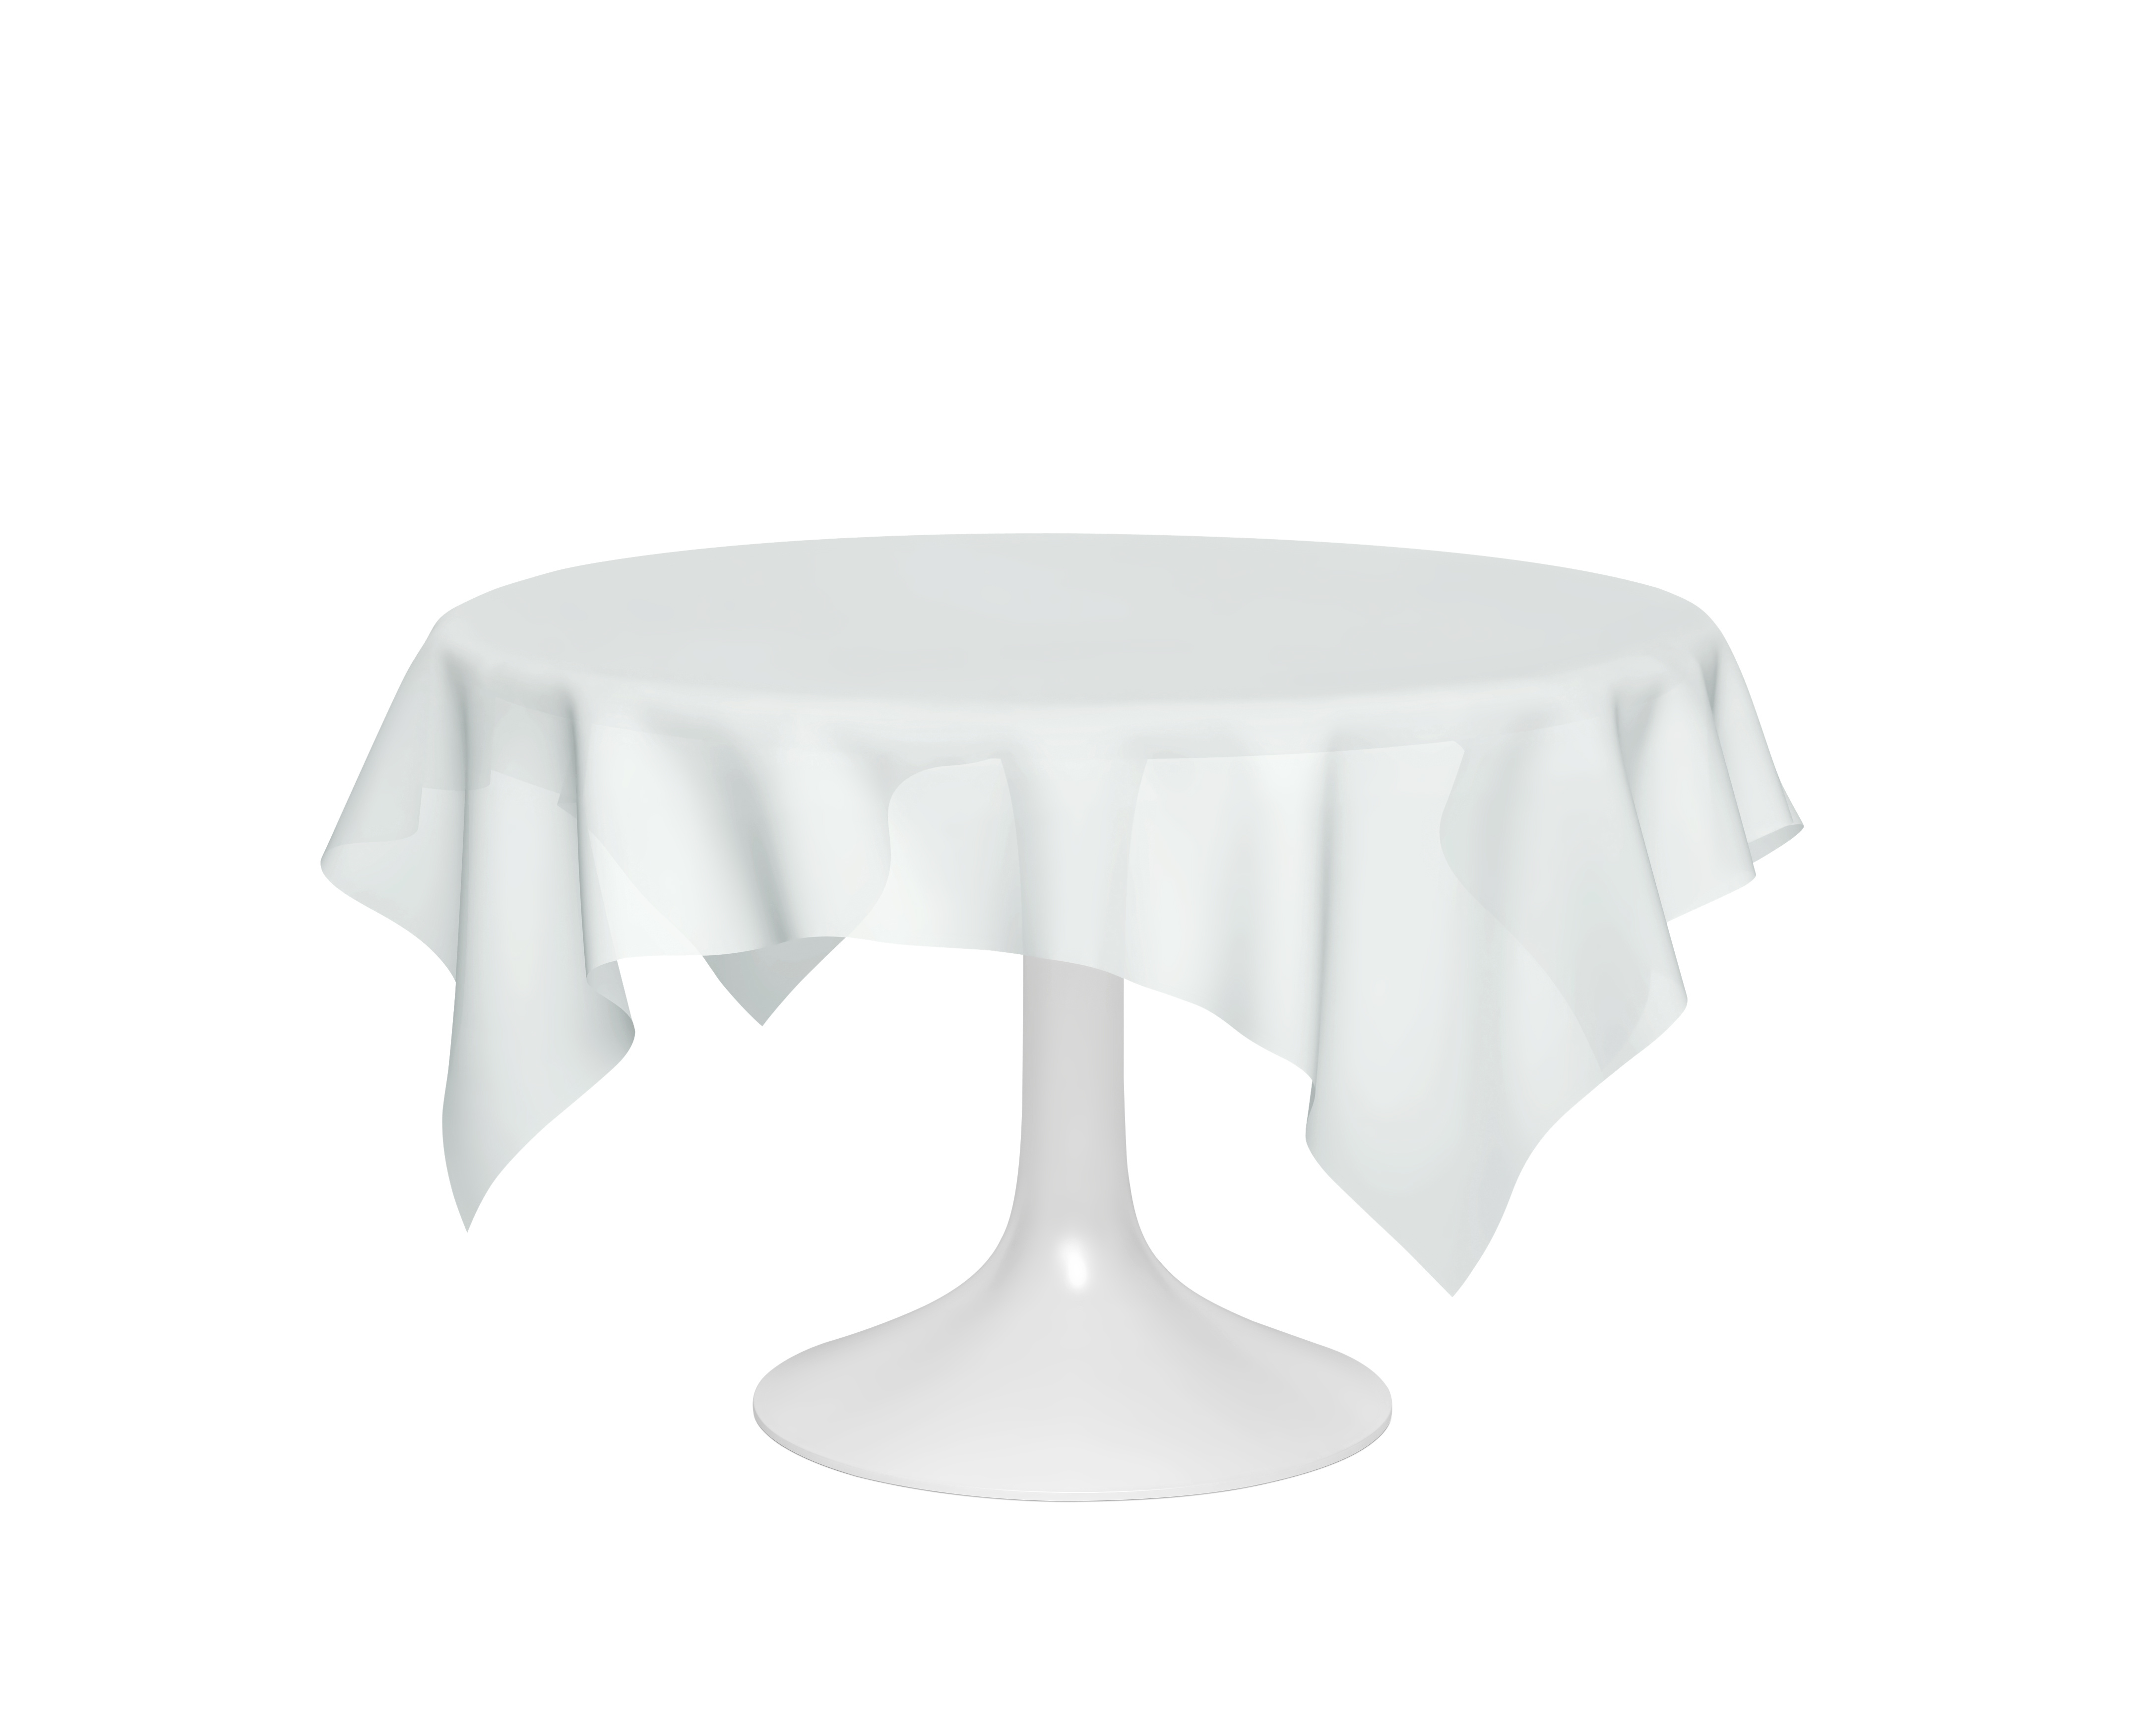 72x72 inch tablecloth on 60 inch round table